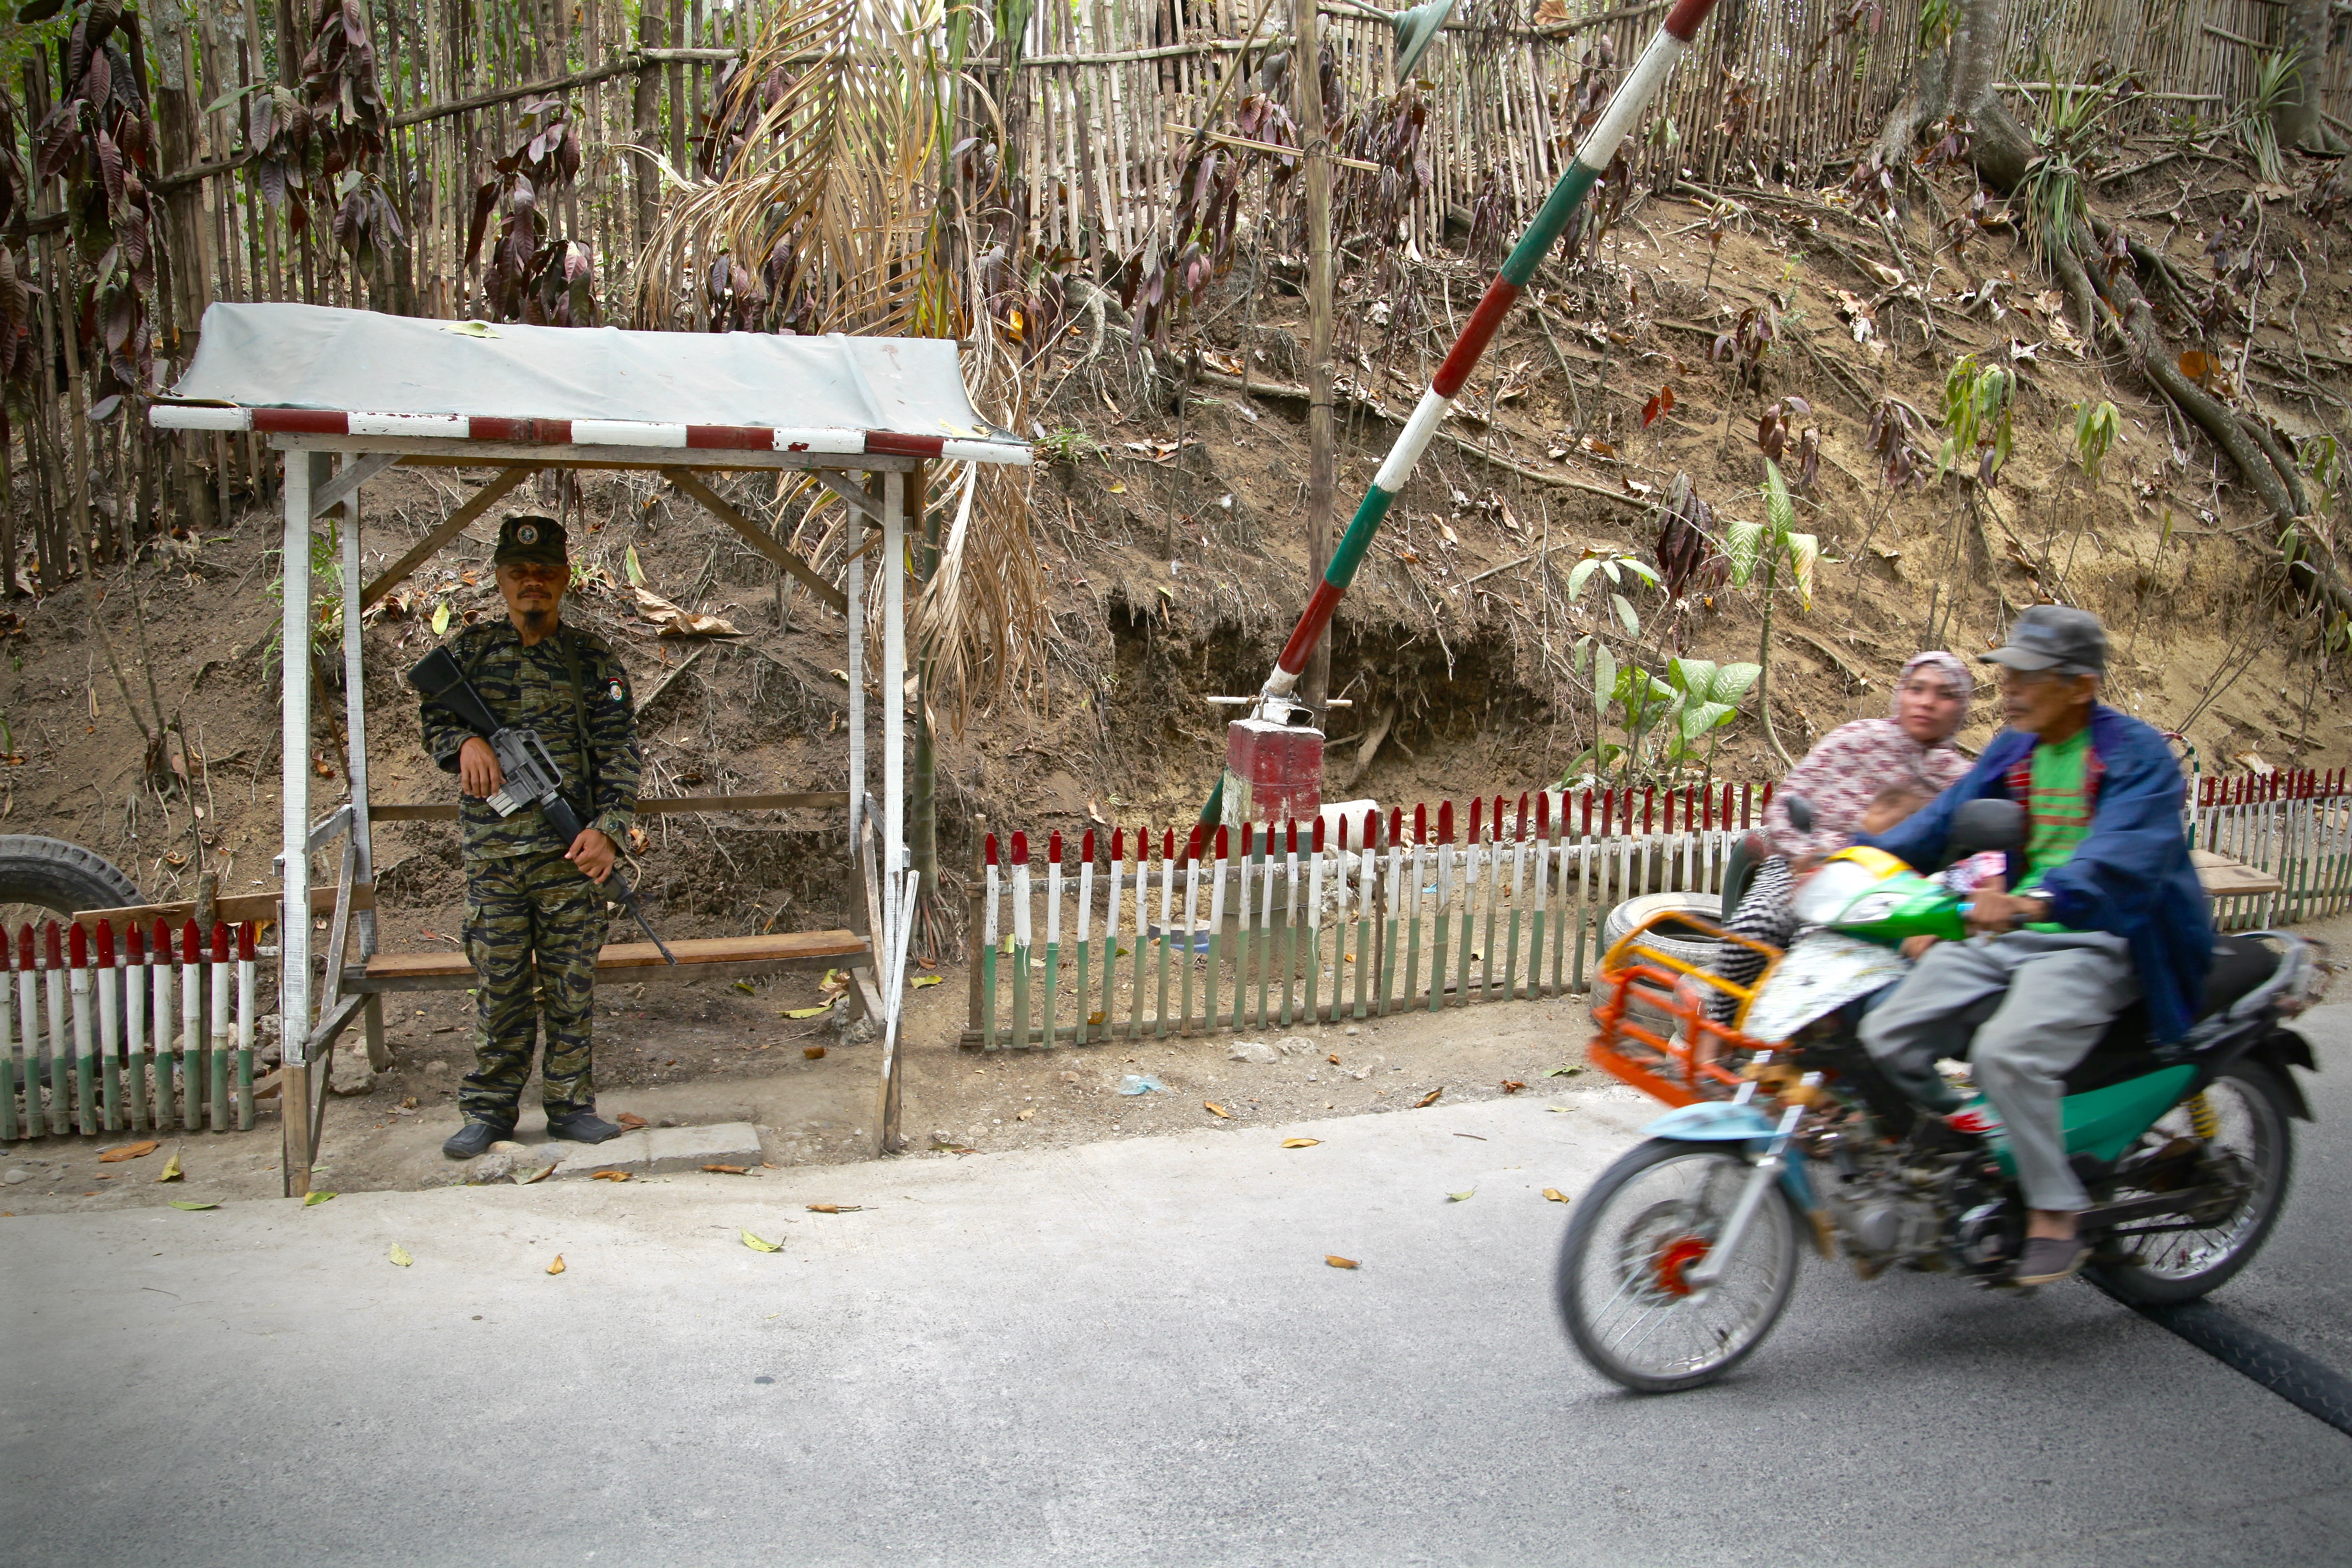 An MILF soldier at a checkpoint